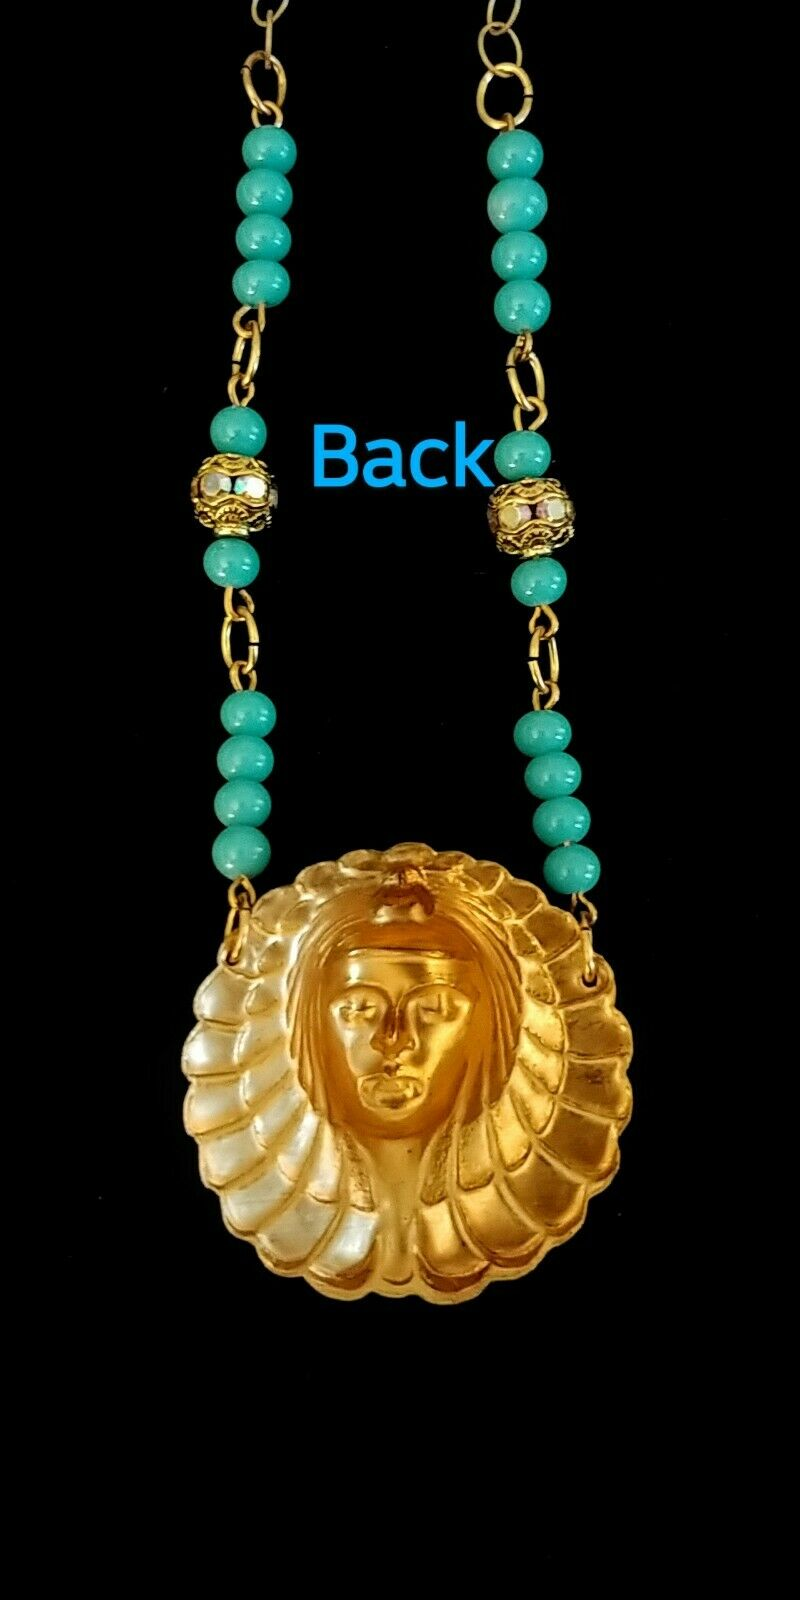 Vintage Egyptian Revival Necklace - image 4